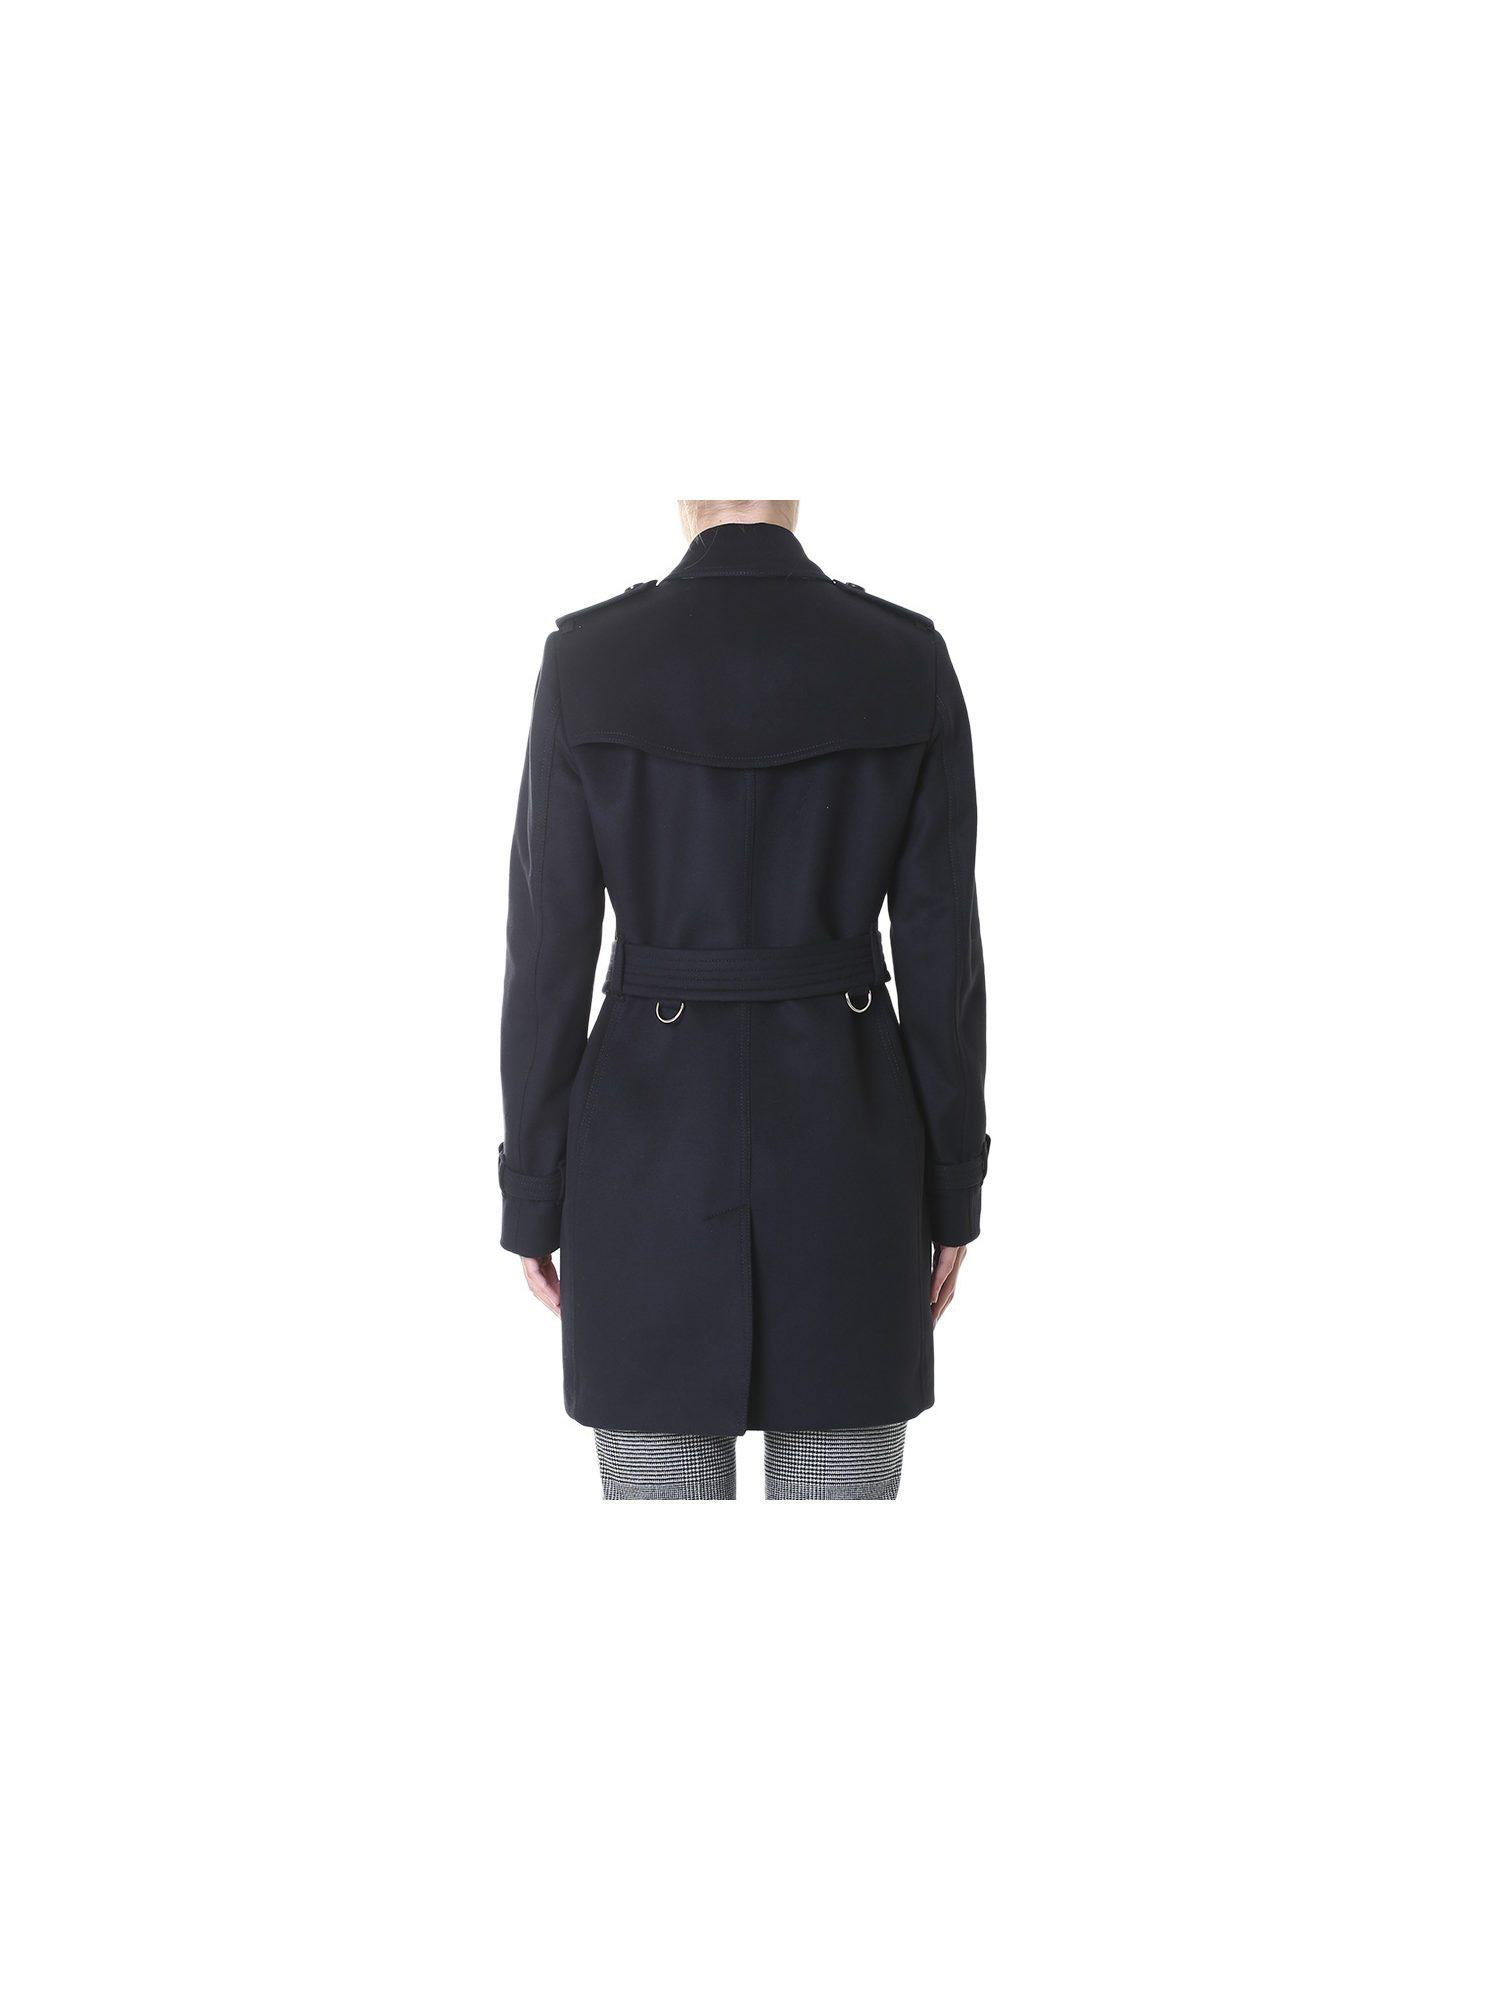 Burberry Black Wool And Cashmere Kensington Coat In Black